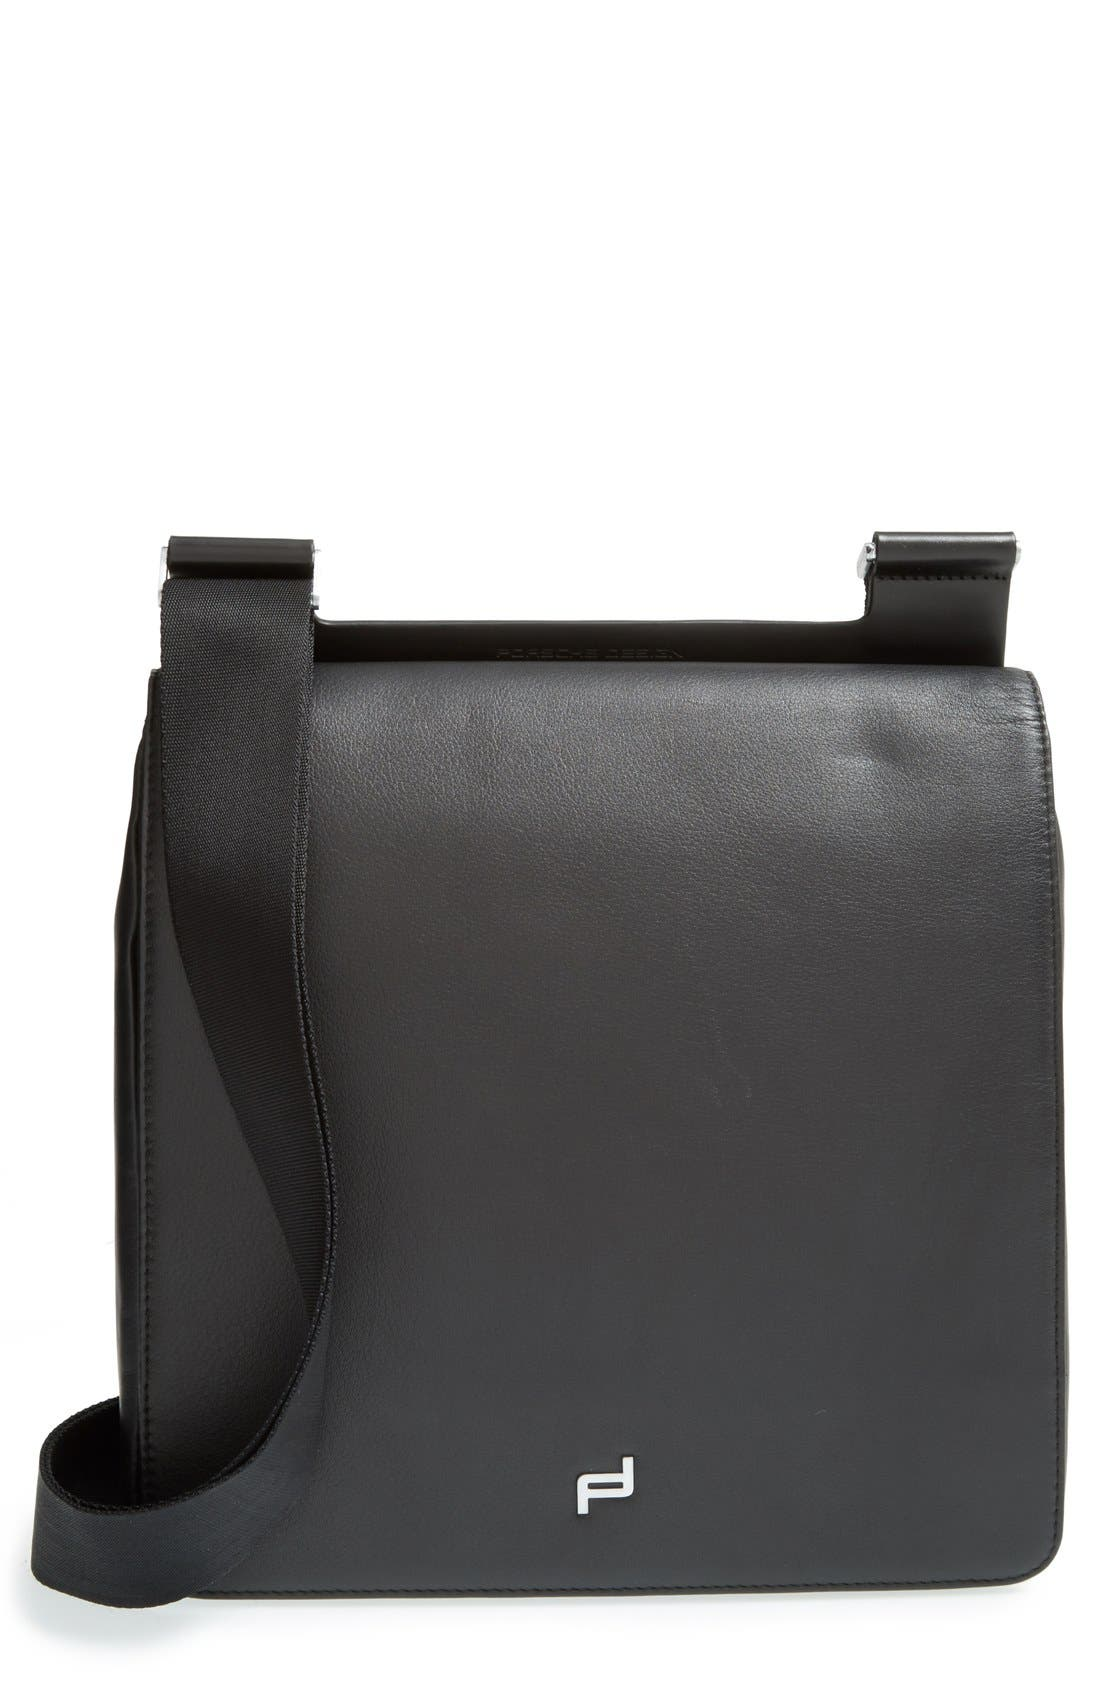 PORSCHE DESIGN 'Shyrt' Leather City Bag